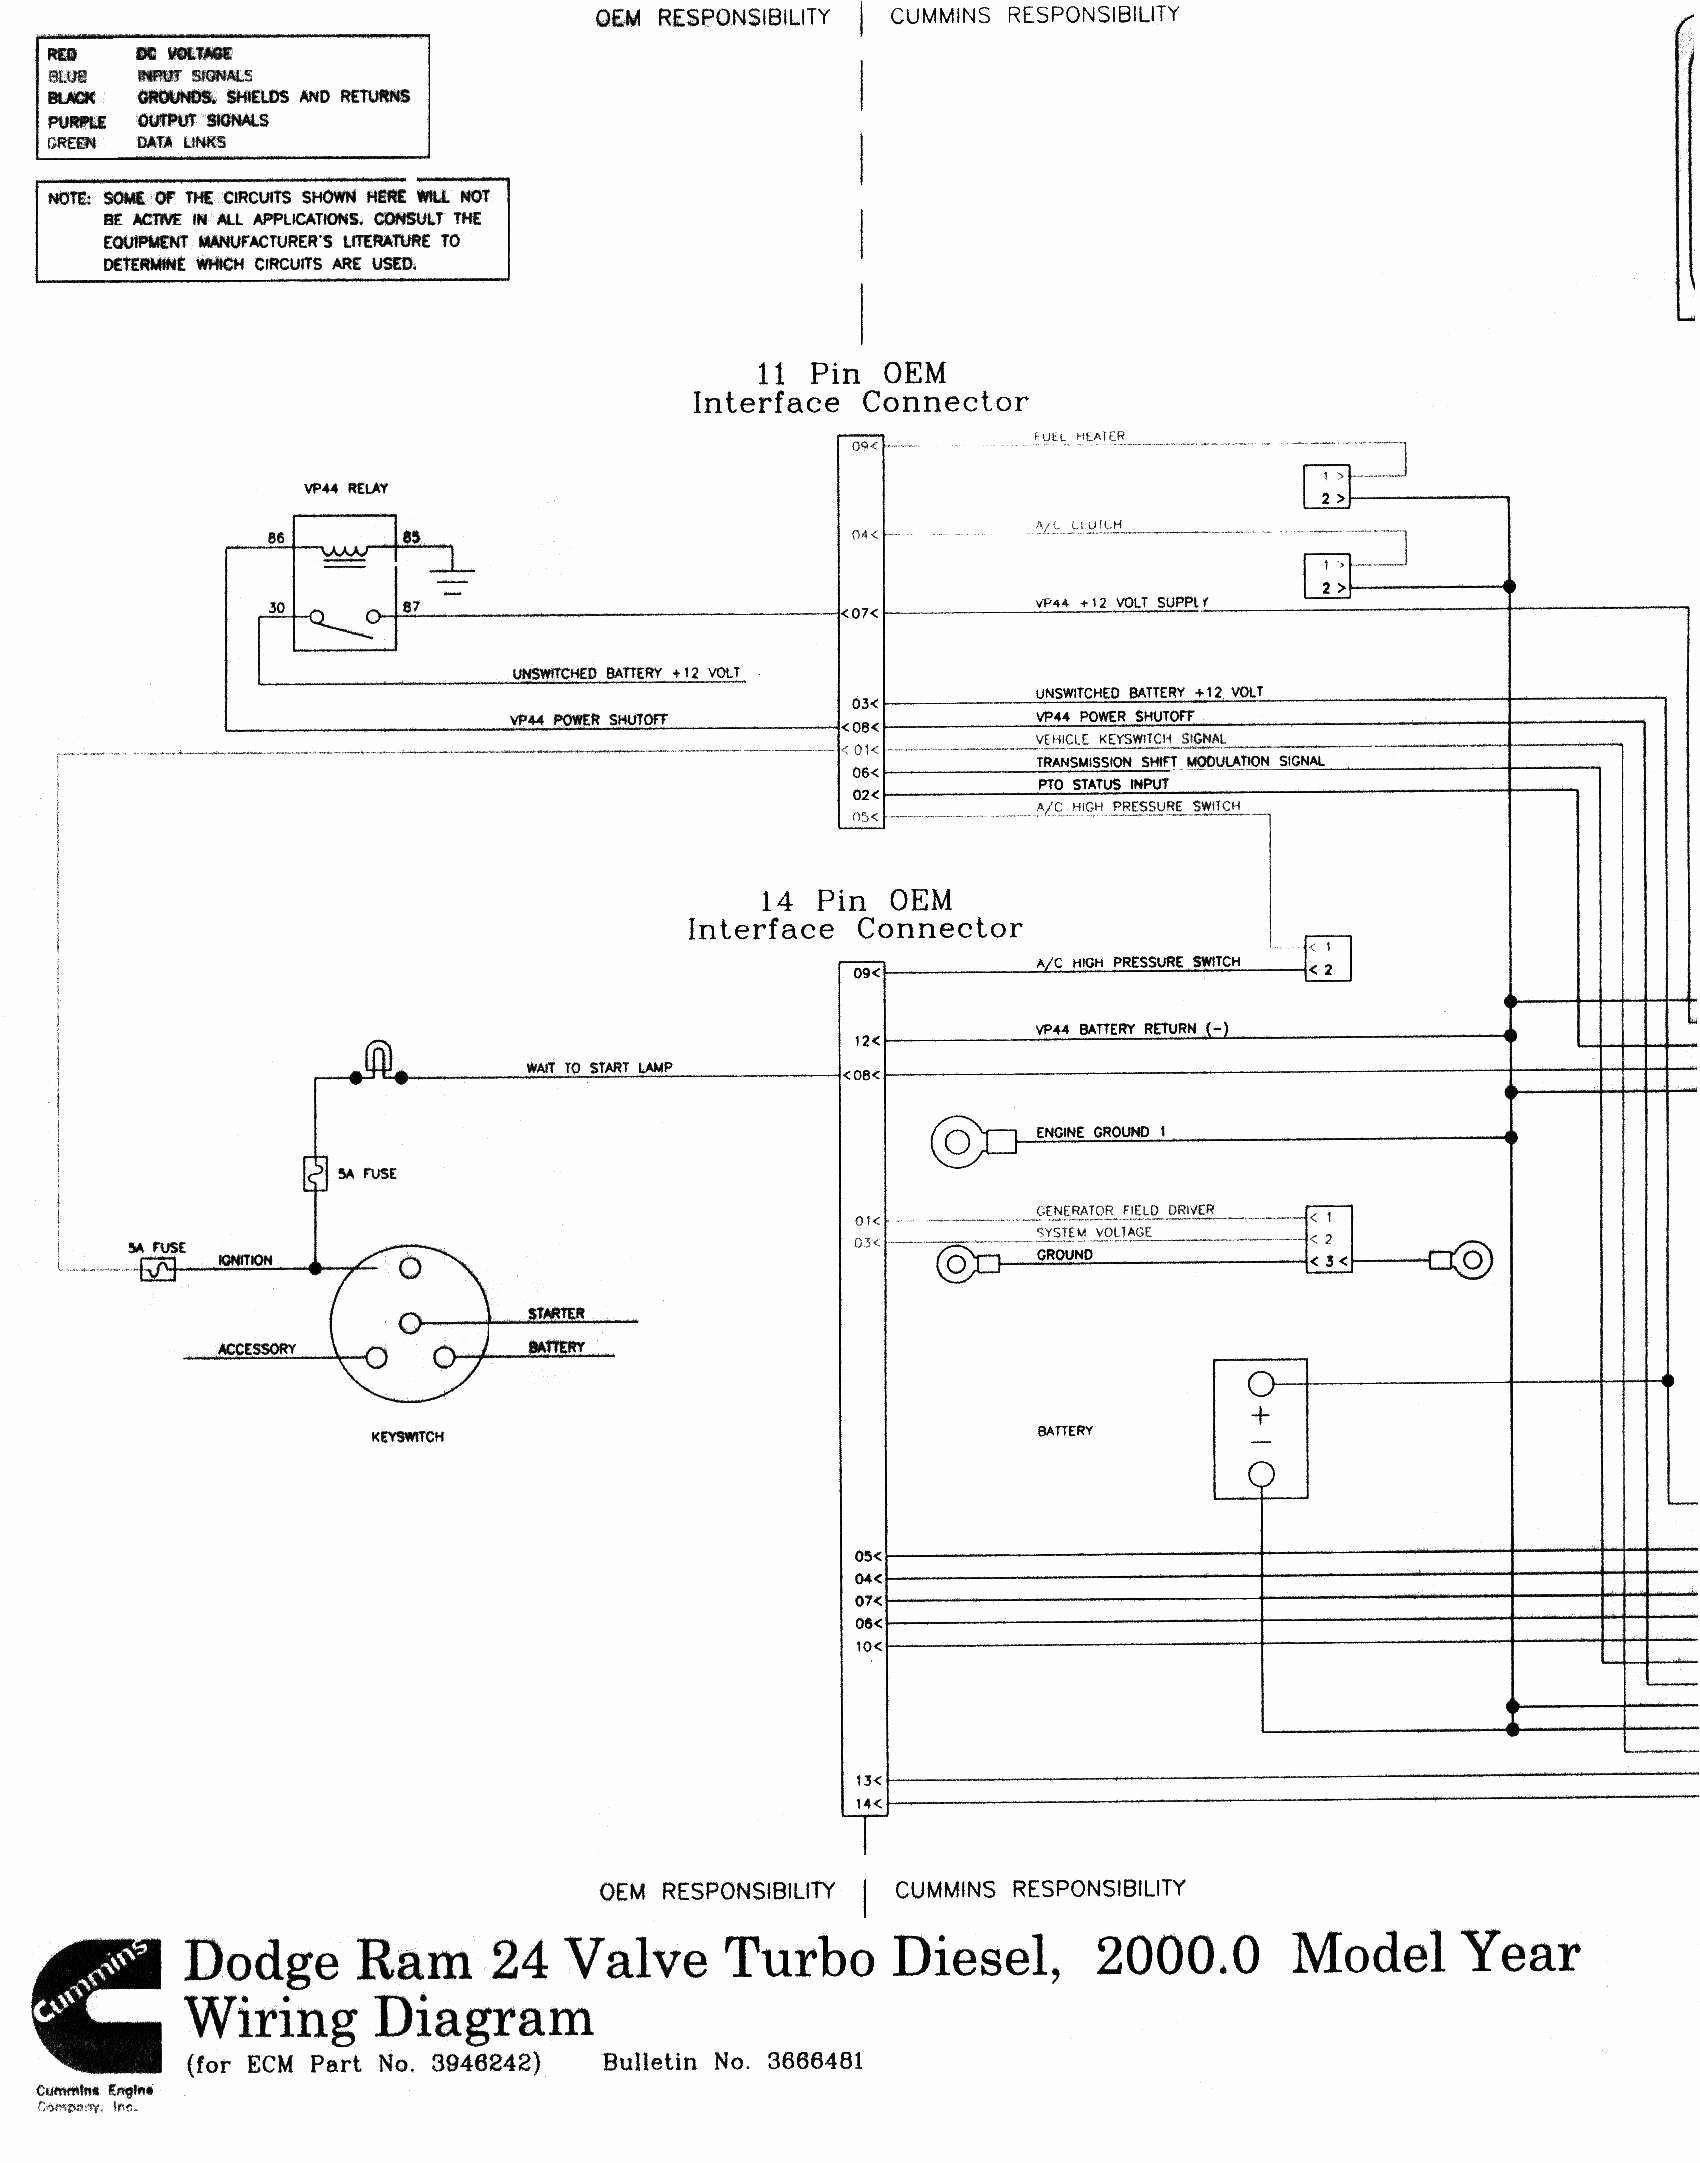 New Wiring Diagram For 2014 Dodge Ram 1500 Diagram Diagramsample Diagramtemplate Wiringdiagram Diagramchart Wor Dodge Trucks Ram Dodge Ram Diesel Cummins